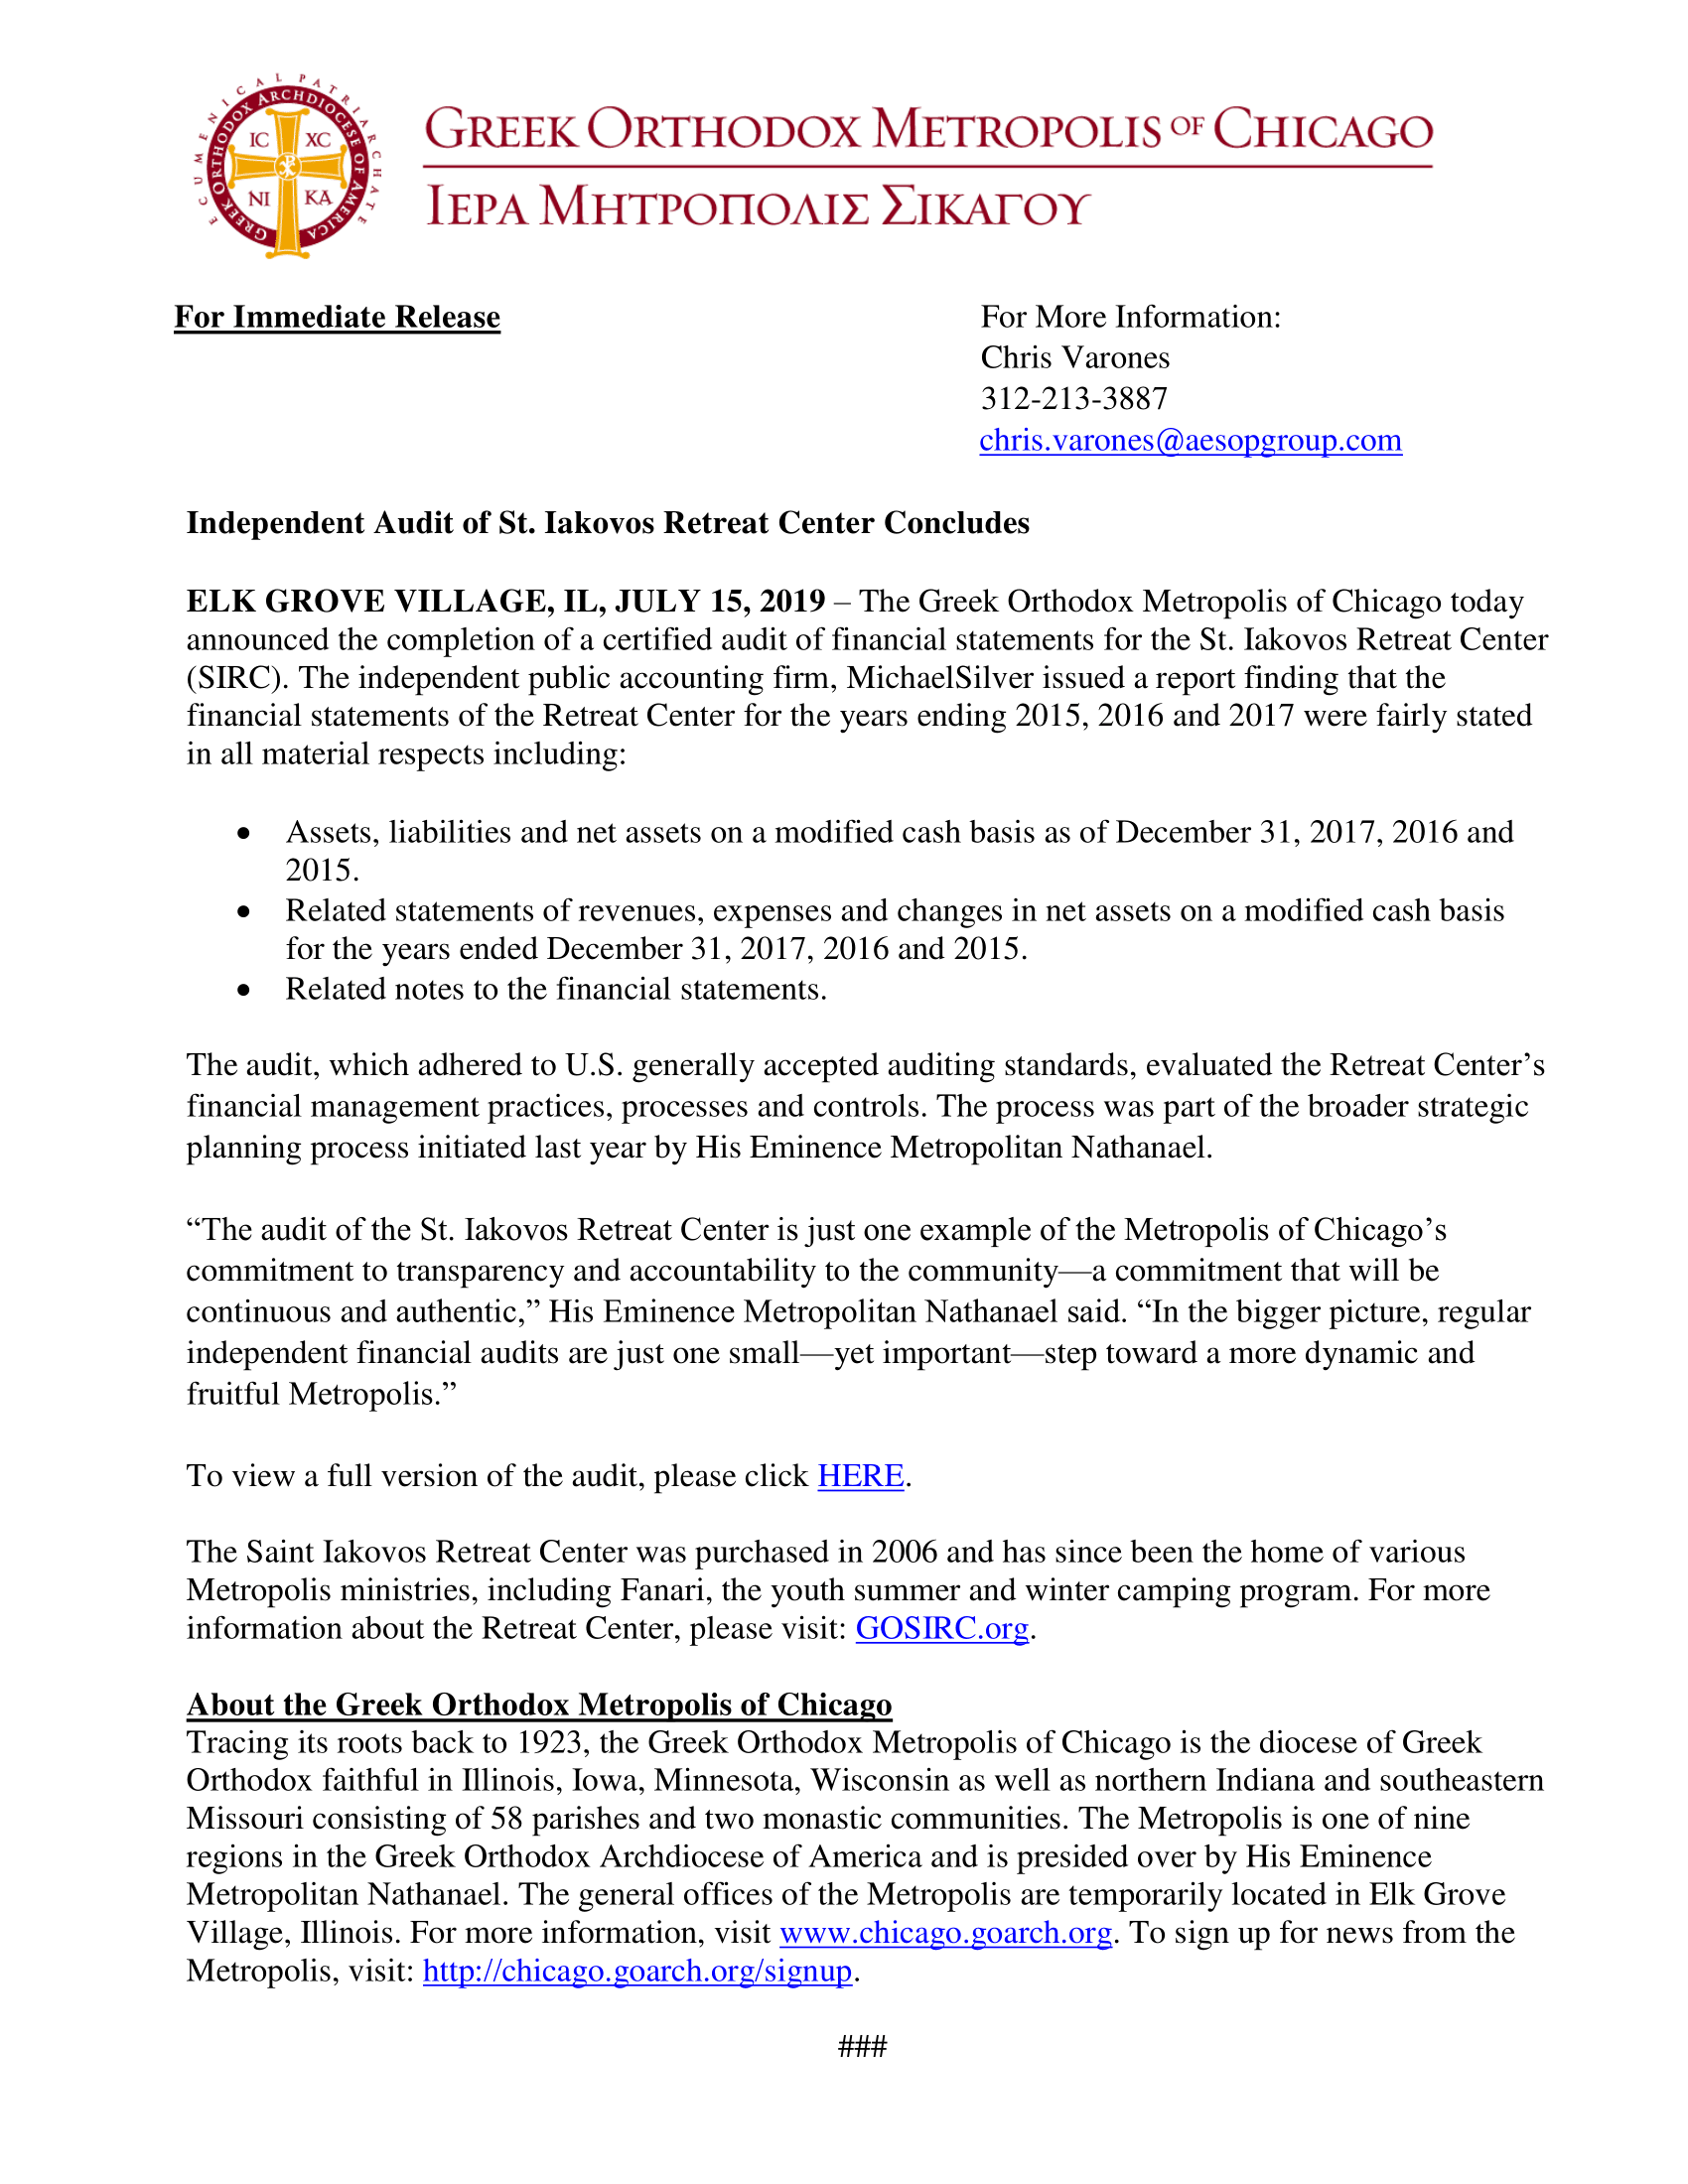 SIRC Financial Audit Press Release 2019-1.png